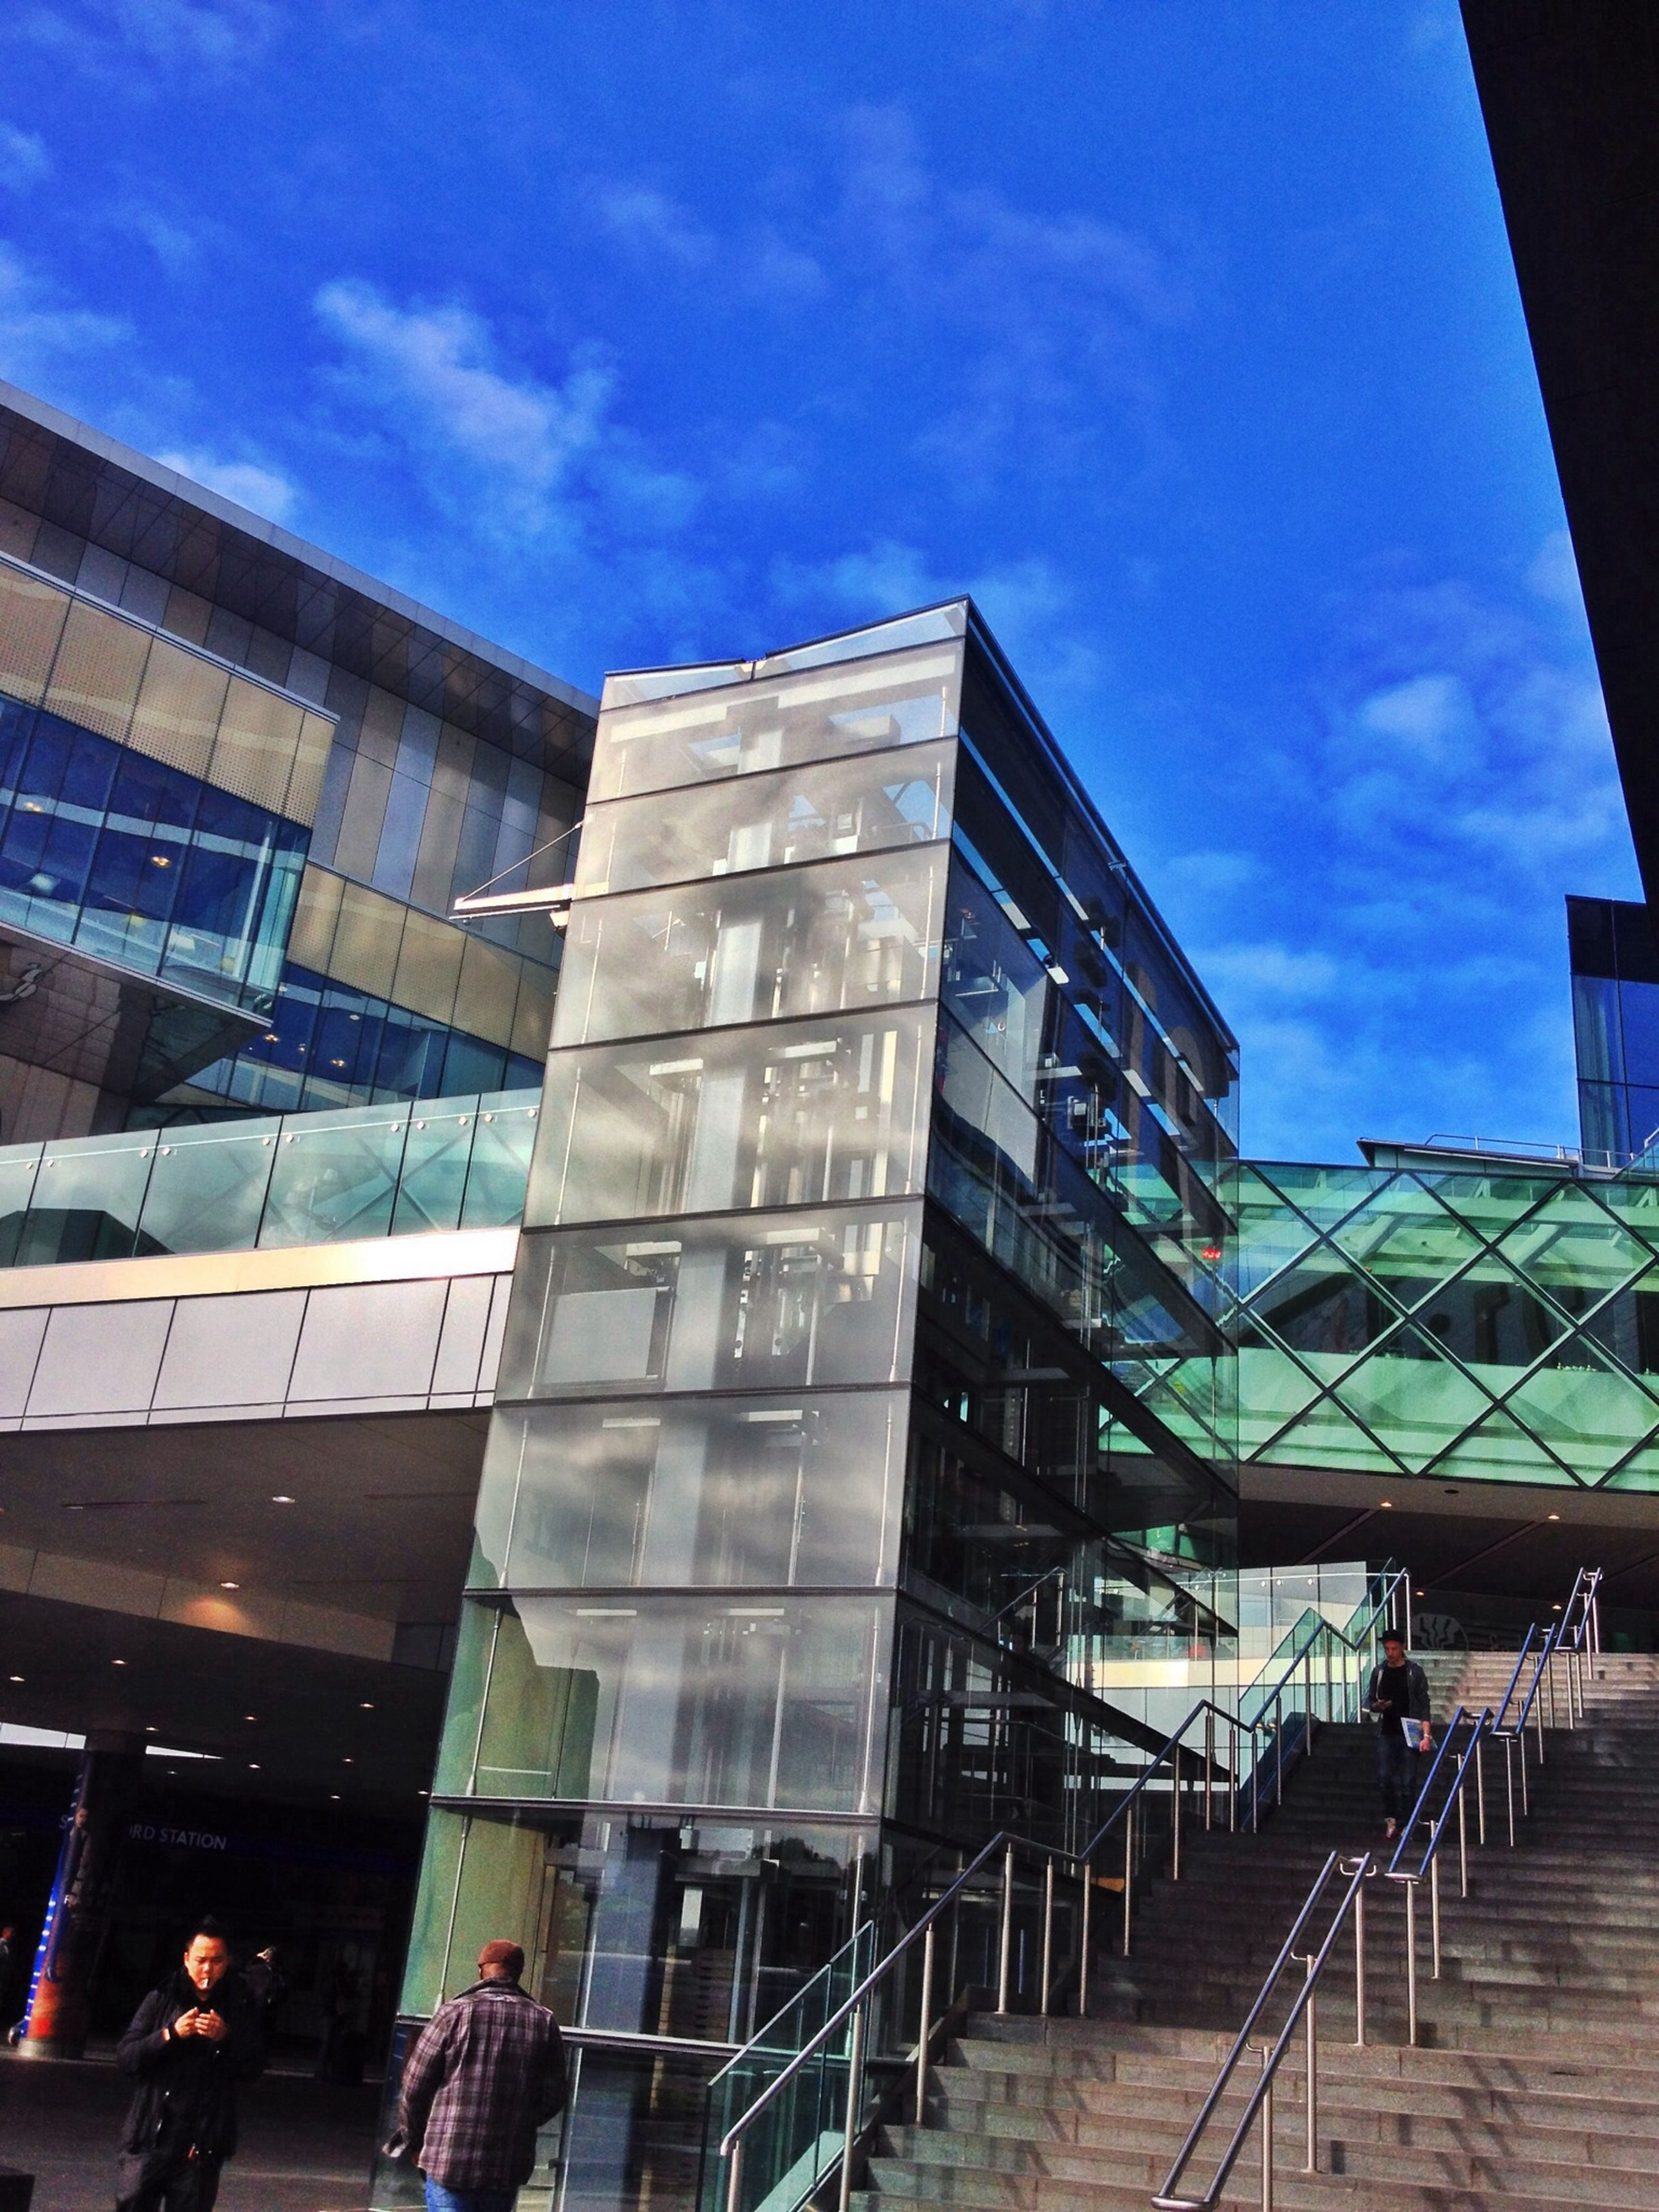 architecture, building exterior, built structure, low angle view, city, building, sky, modern, window, glass - material, reflection, office building, city life, sunlight, day, outdoors, blue, residential building, no people, cloud - sky